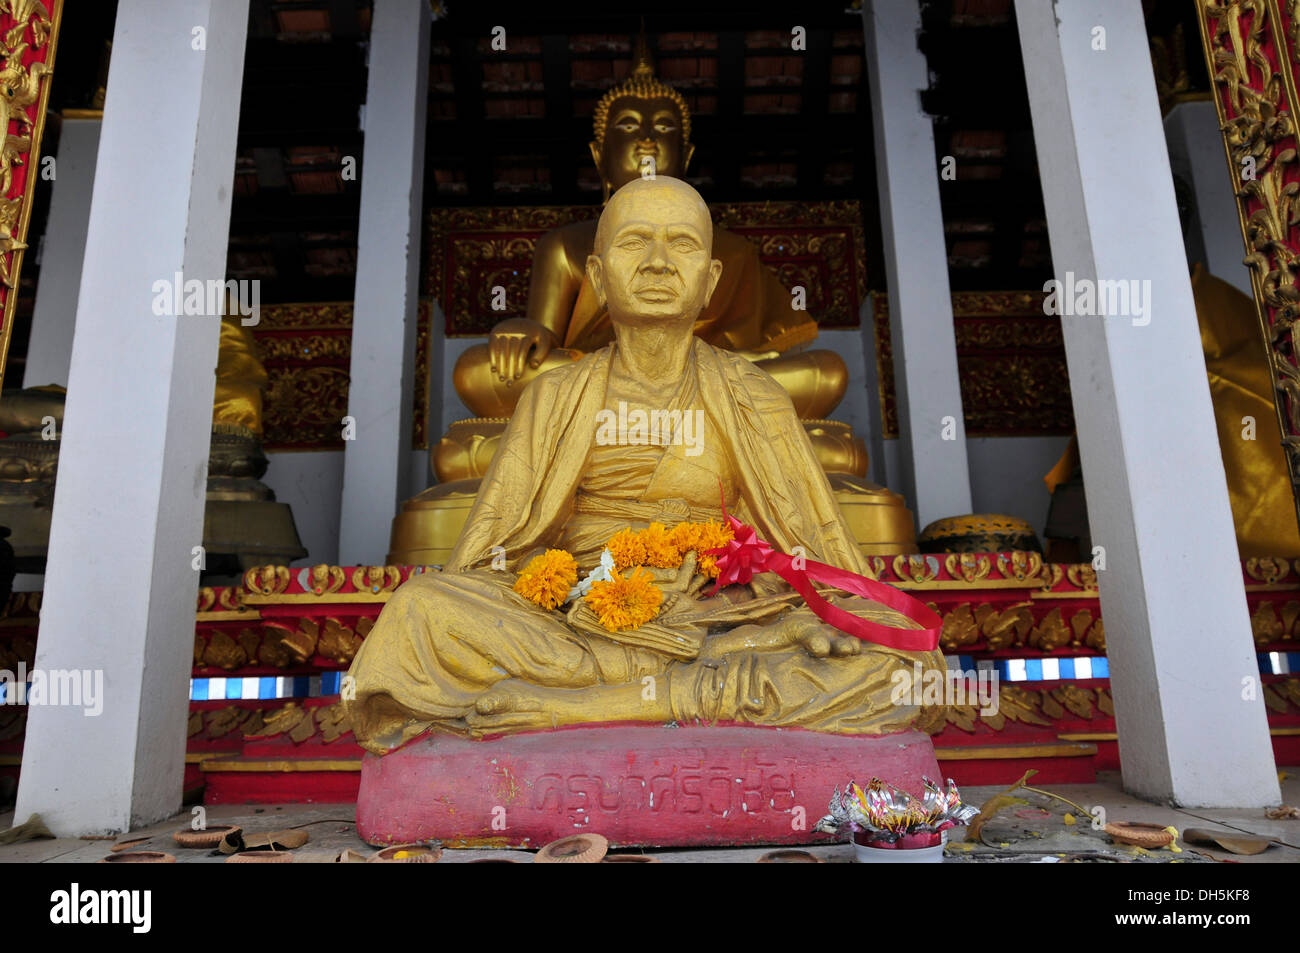 Statue of a revered monk, Wat That Kham, Chiang Mai, Thailand, Asia - Stock Image